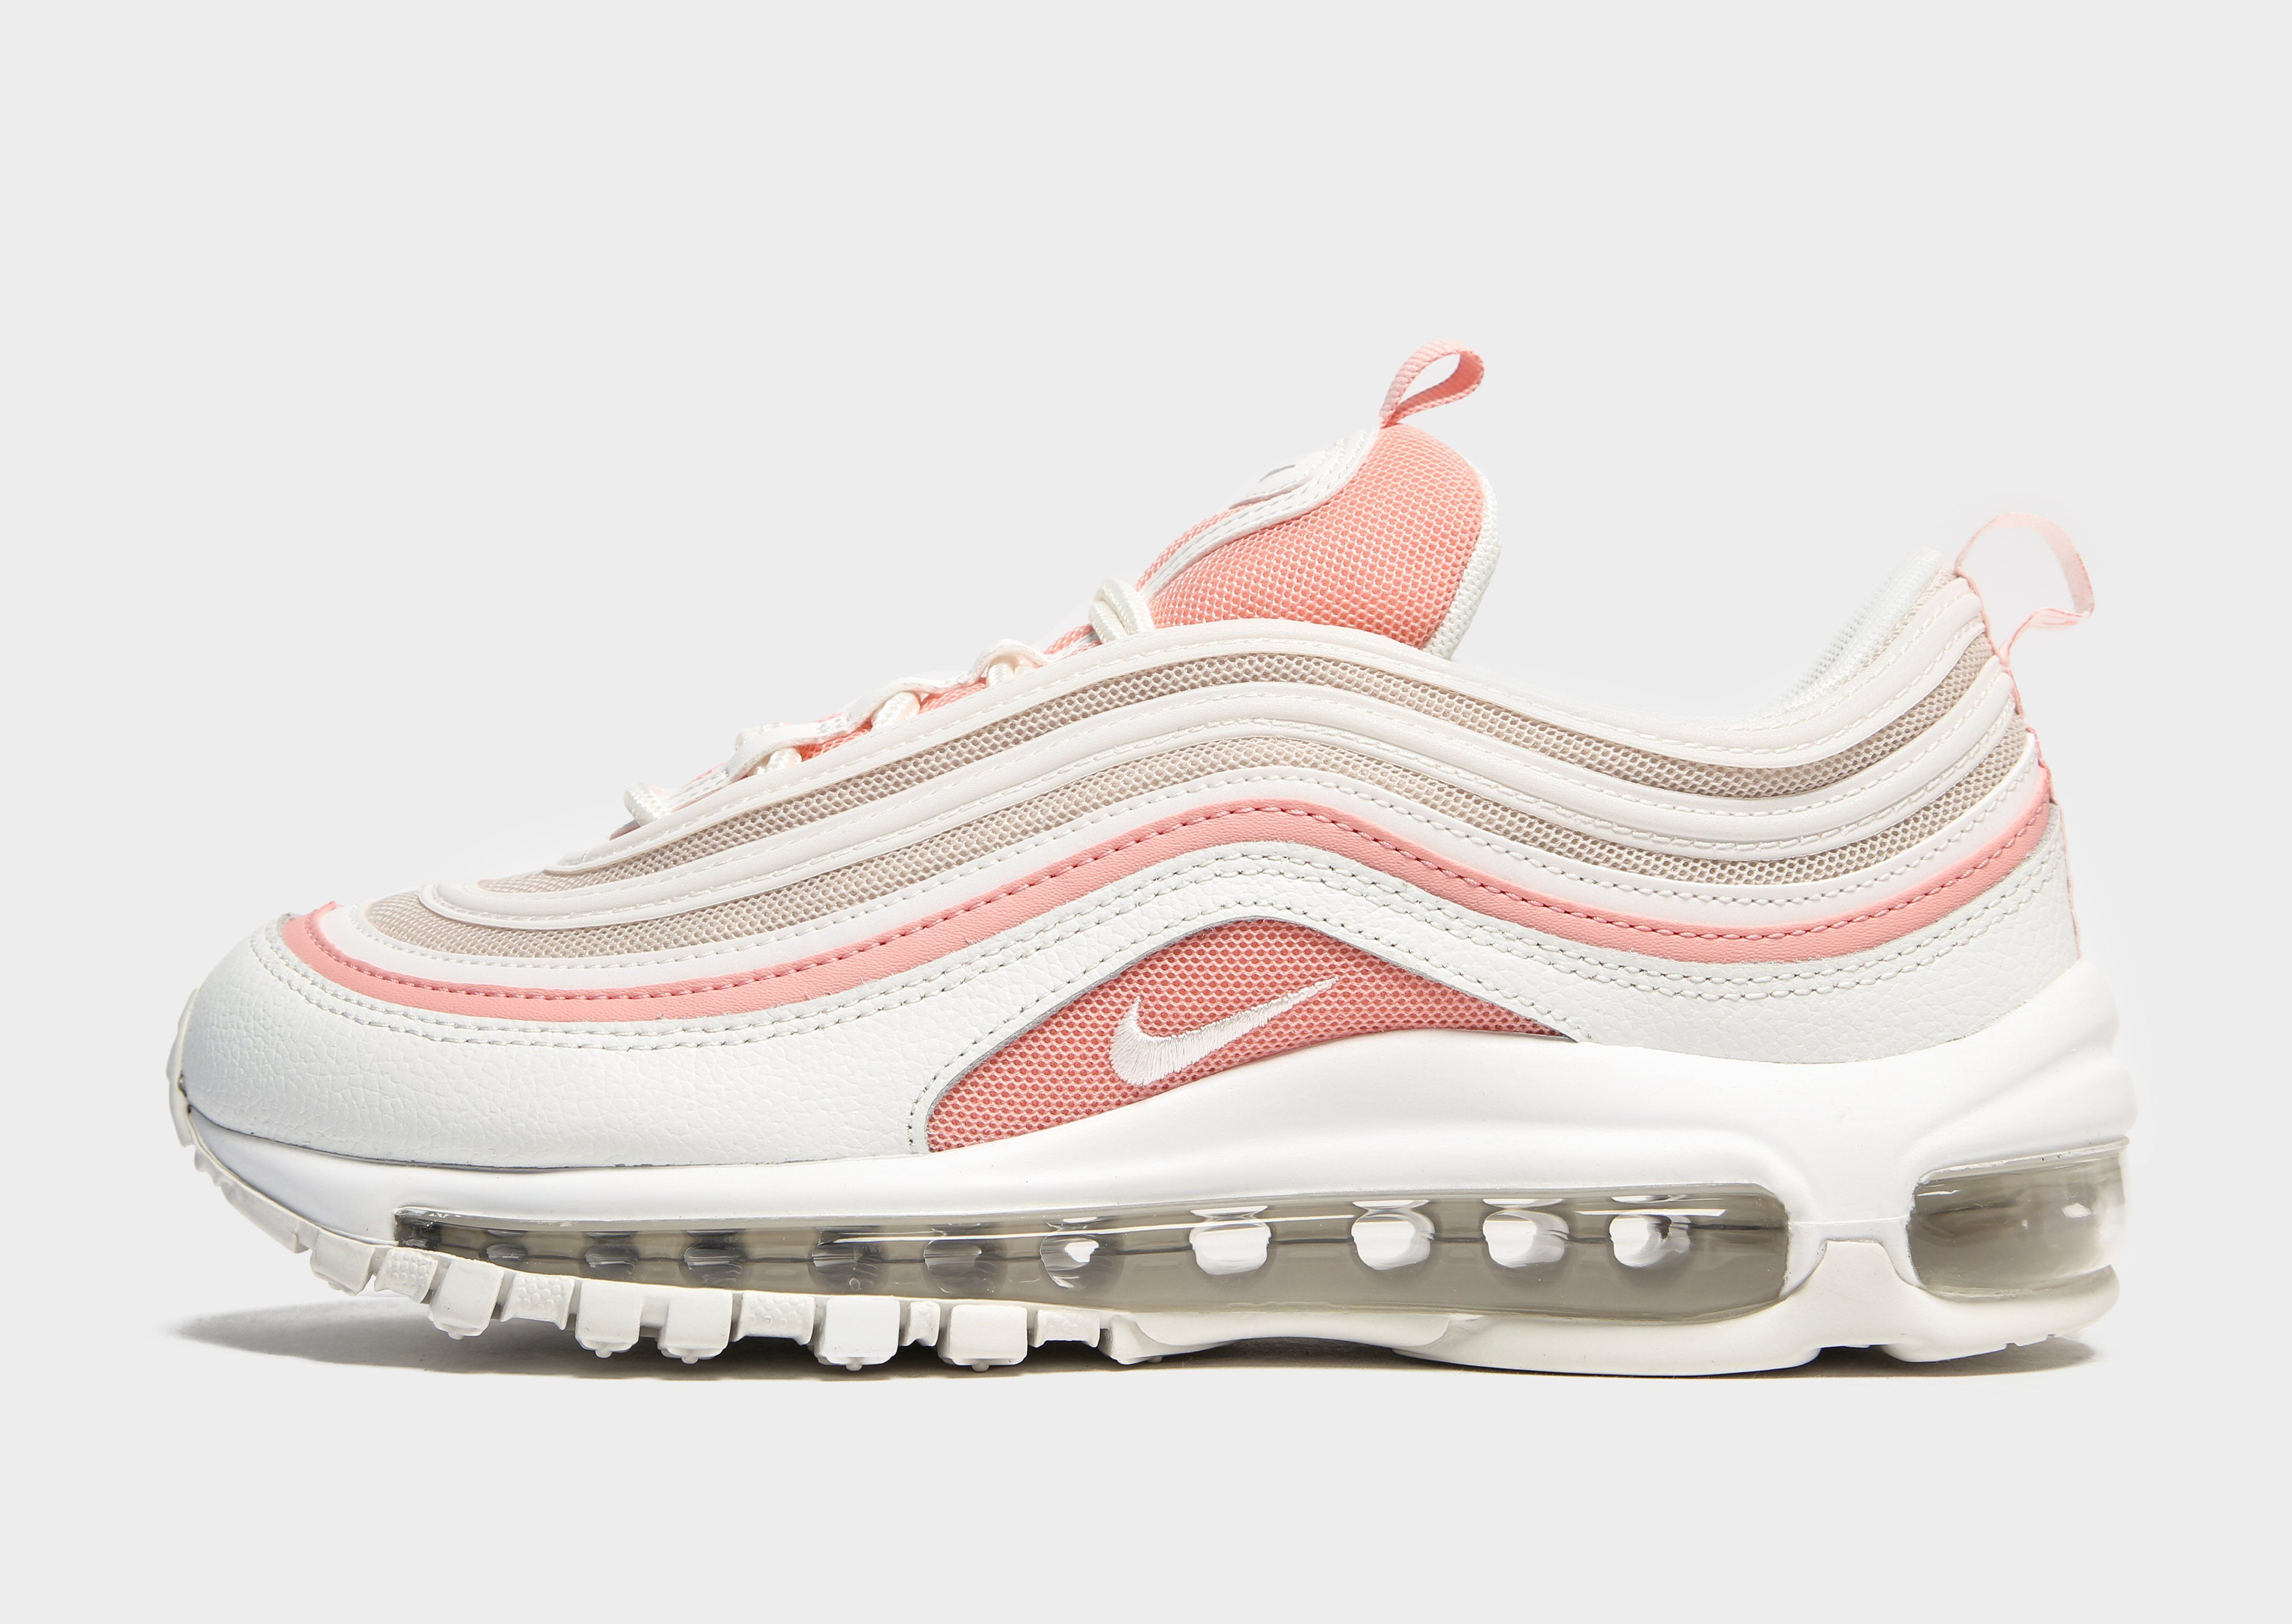 on sale c428a d4109 Nike Air Max 97 Women's Shoe | JD Sports